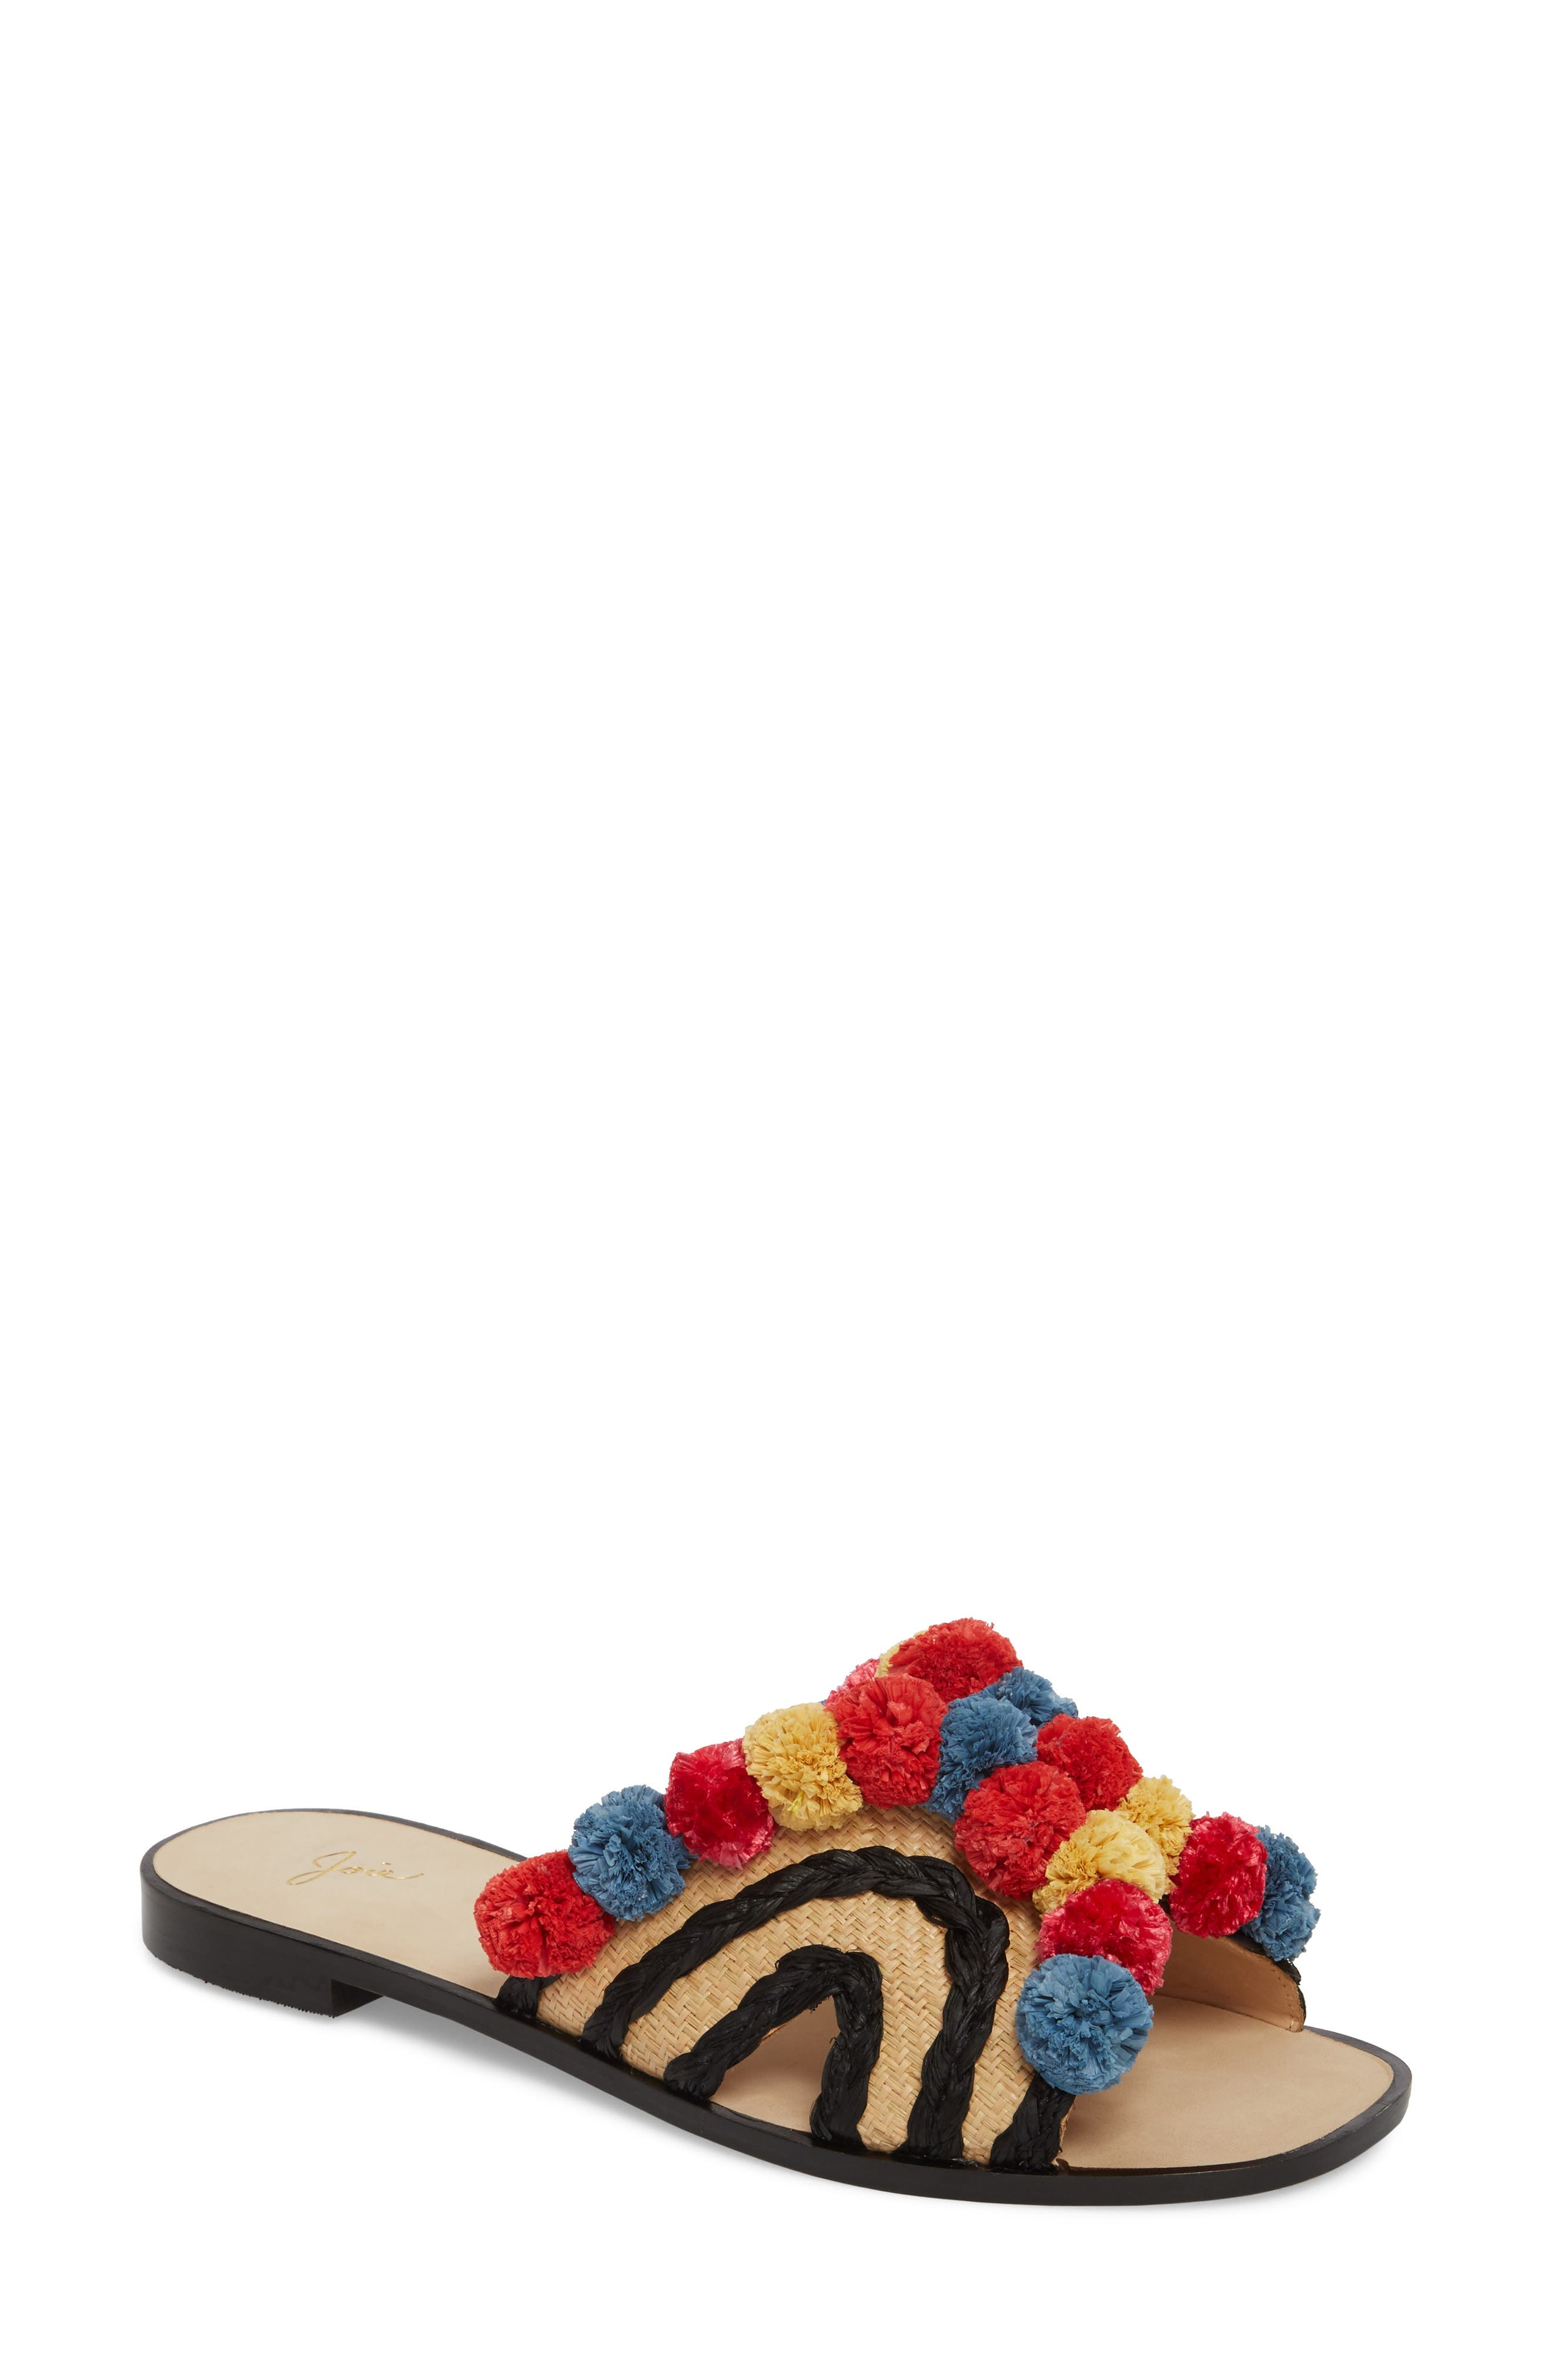 Paden Pompom Slide Sandals,                         Main,                         color, 002